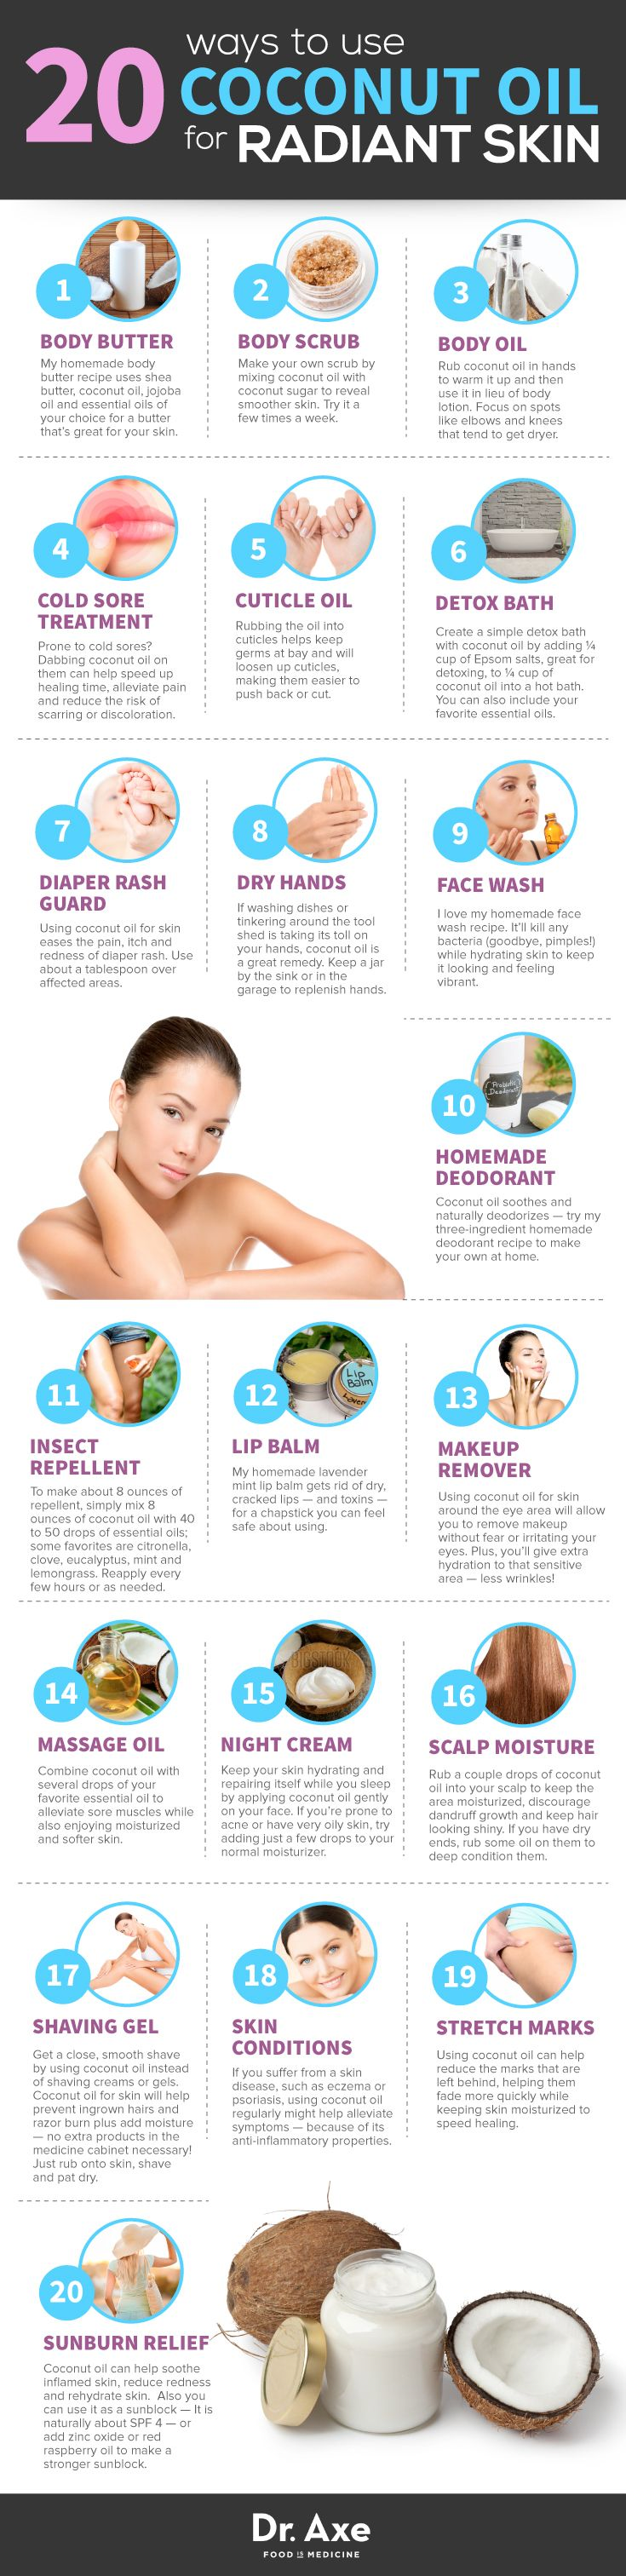 20 Ways to Use Coconut Oil for Radiant Skin https://www.draxe.com #health #holistic #natural